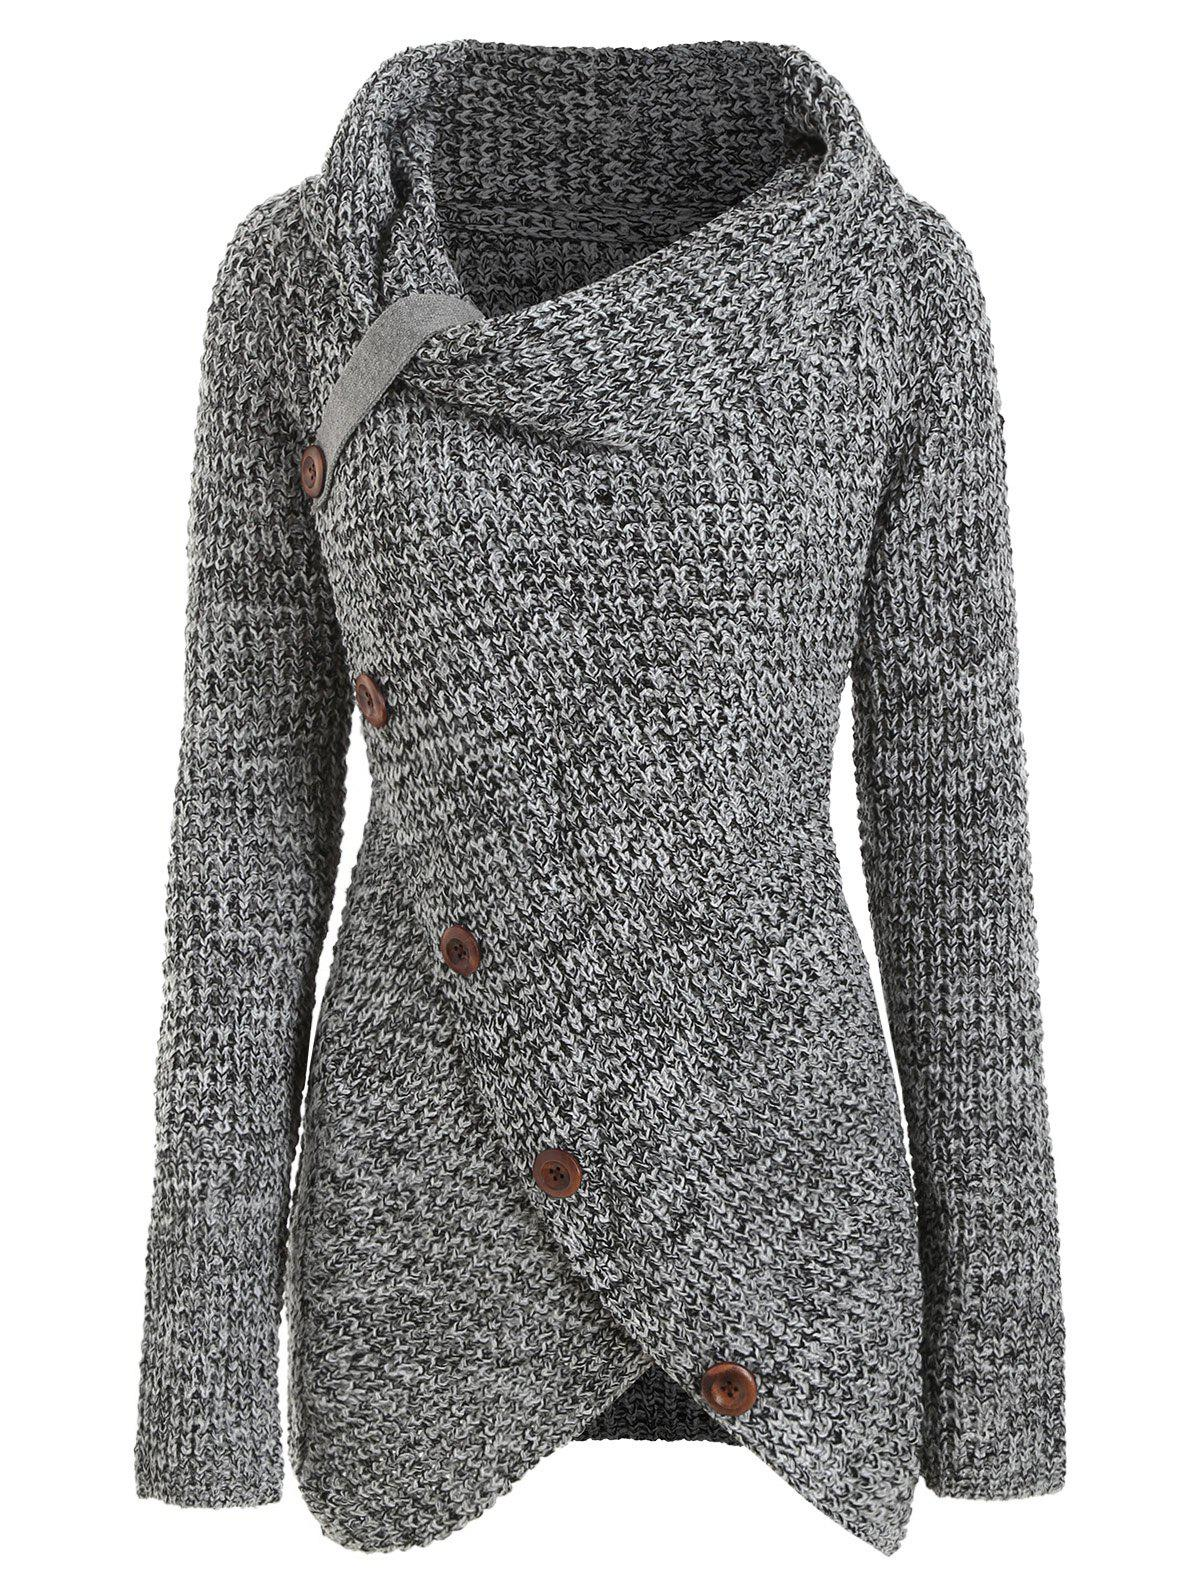 Buttoned Cowl Neck Overlap Pullover Plus Size Sweater - GRAY L